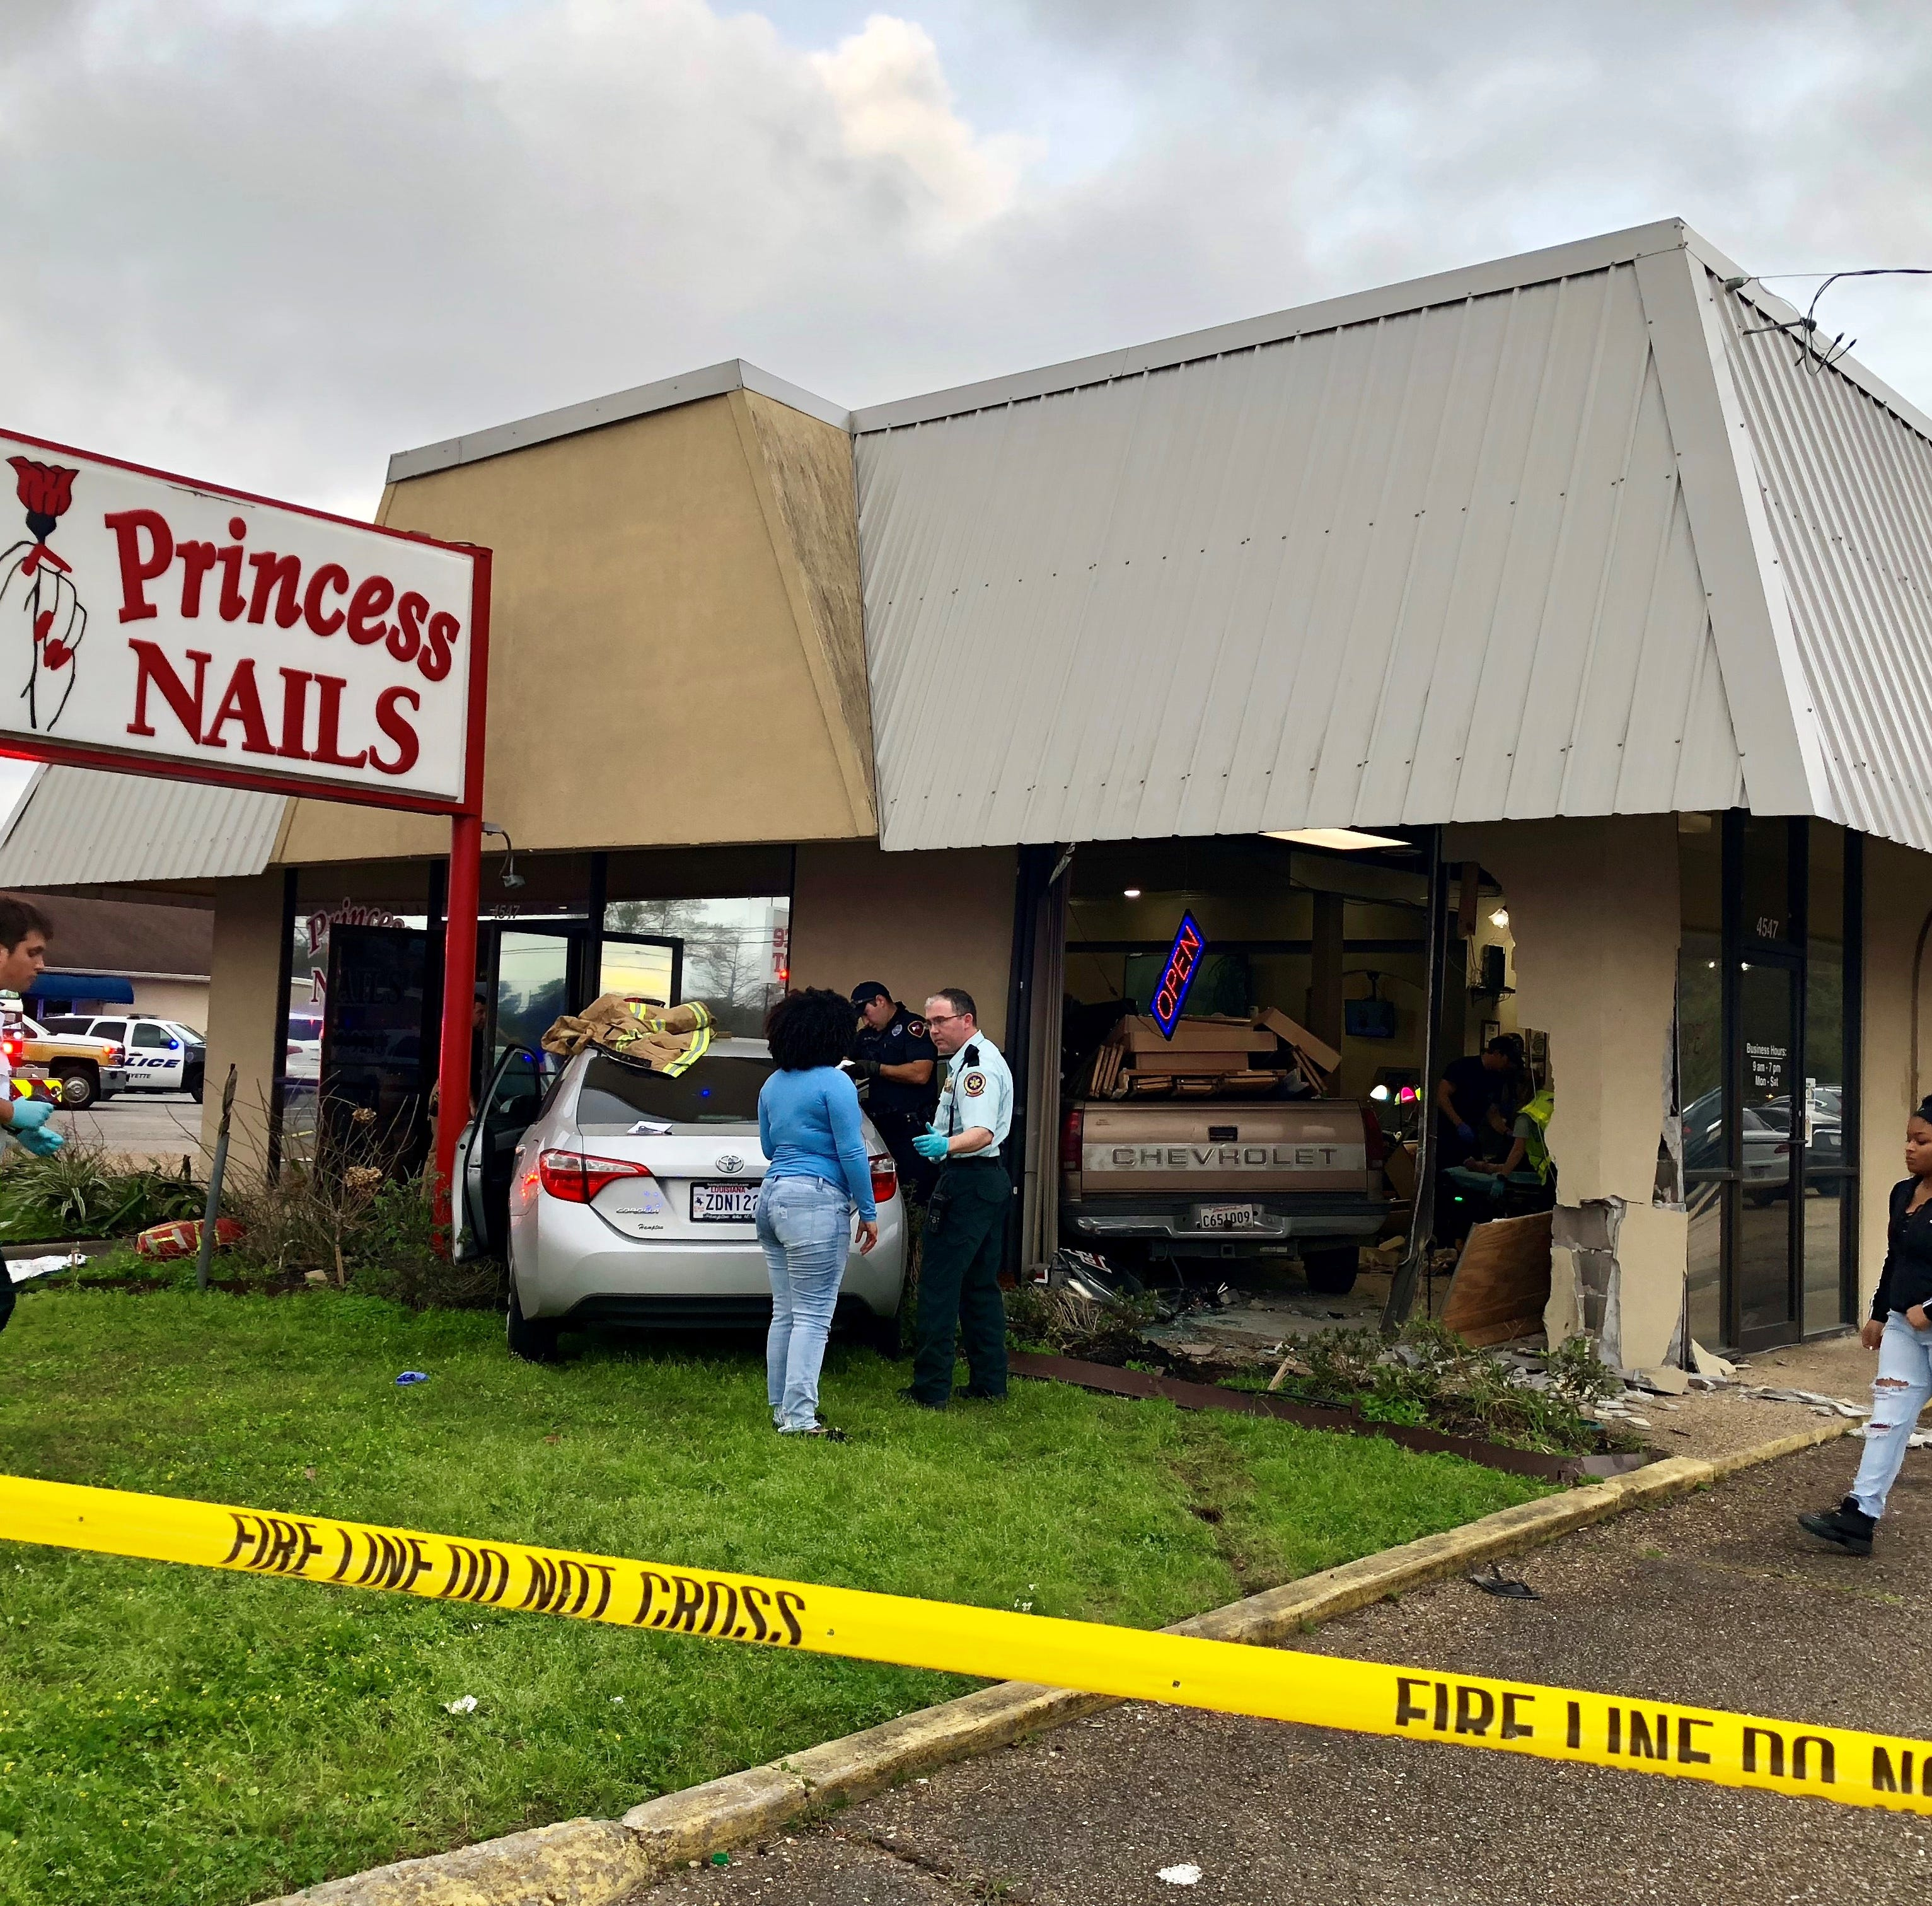 Lafayette Police and other first responders are on the scene of an accident in which a truck crashed through the wall of Princess Nails on Johnston Street, injuring several people.